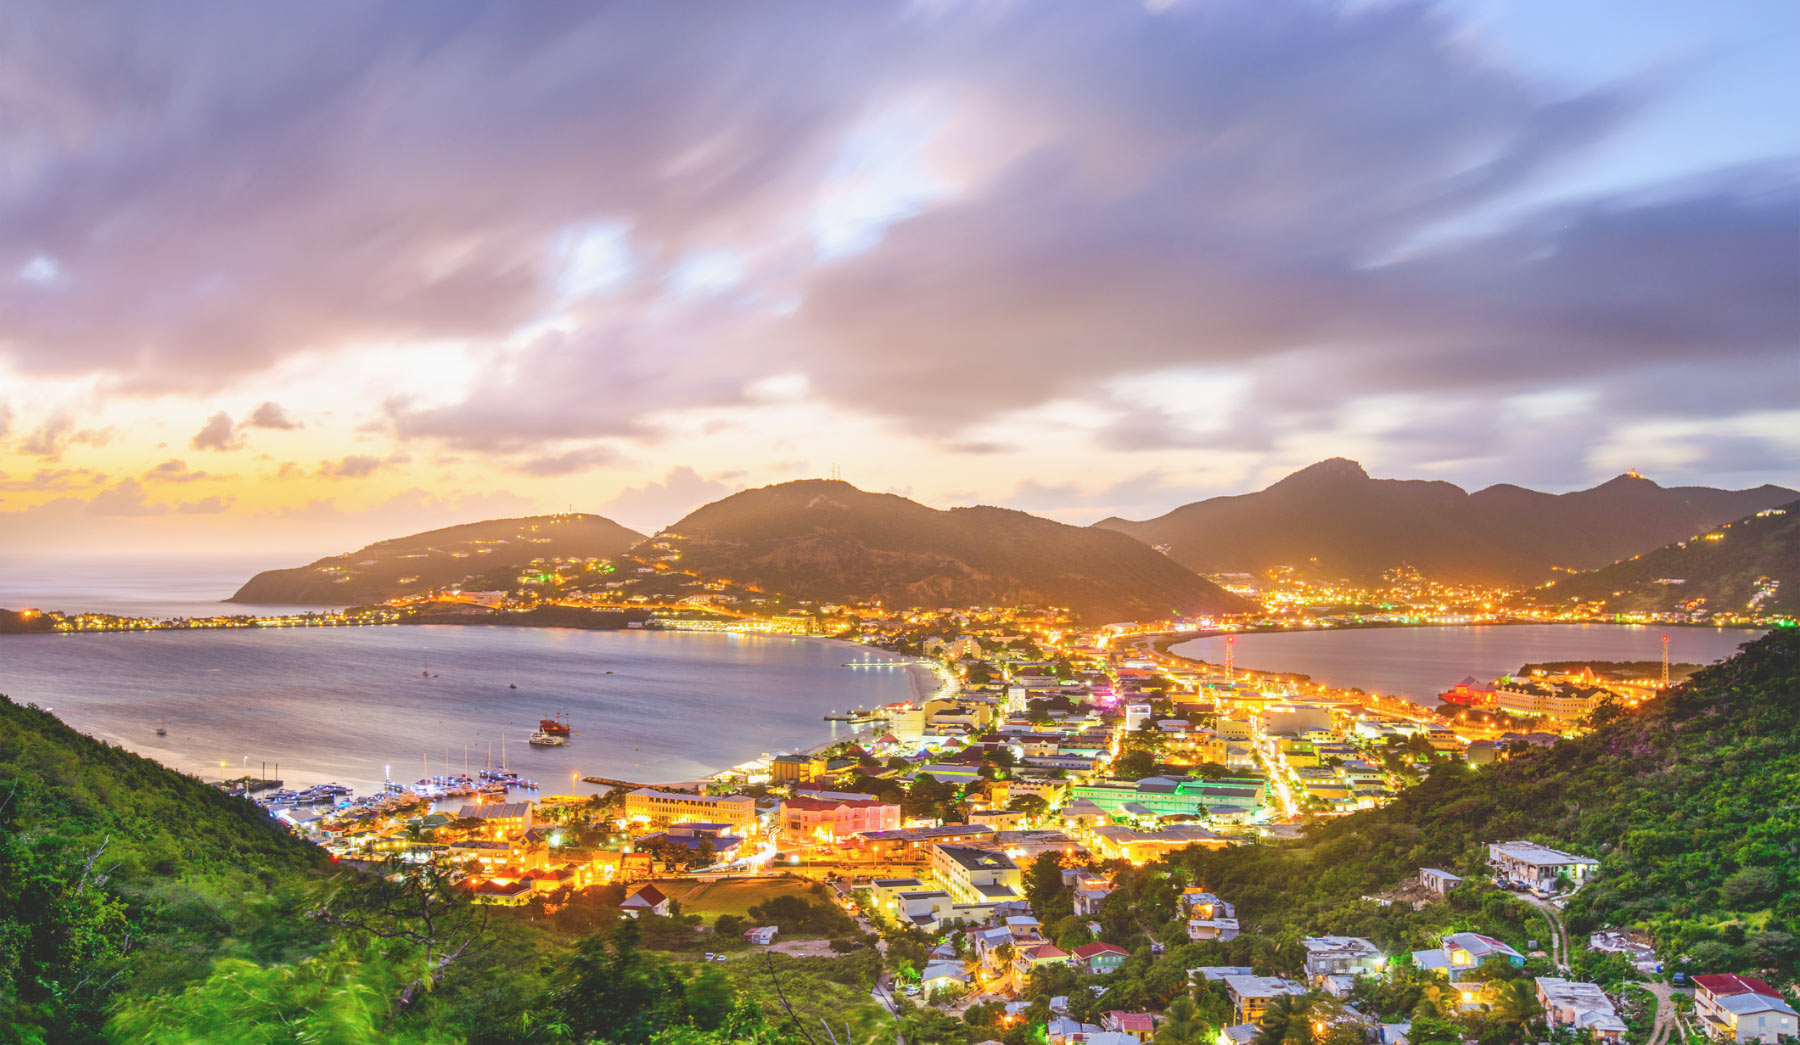 Nighttime Aerial View Of Hills, Coves, and City in St Martin